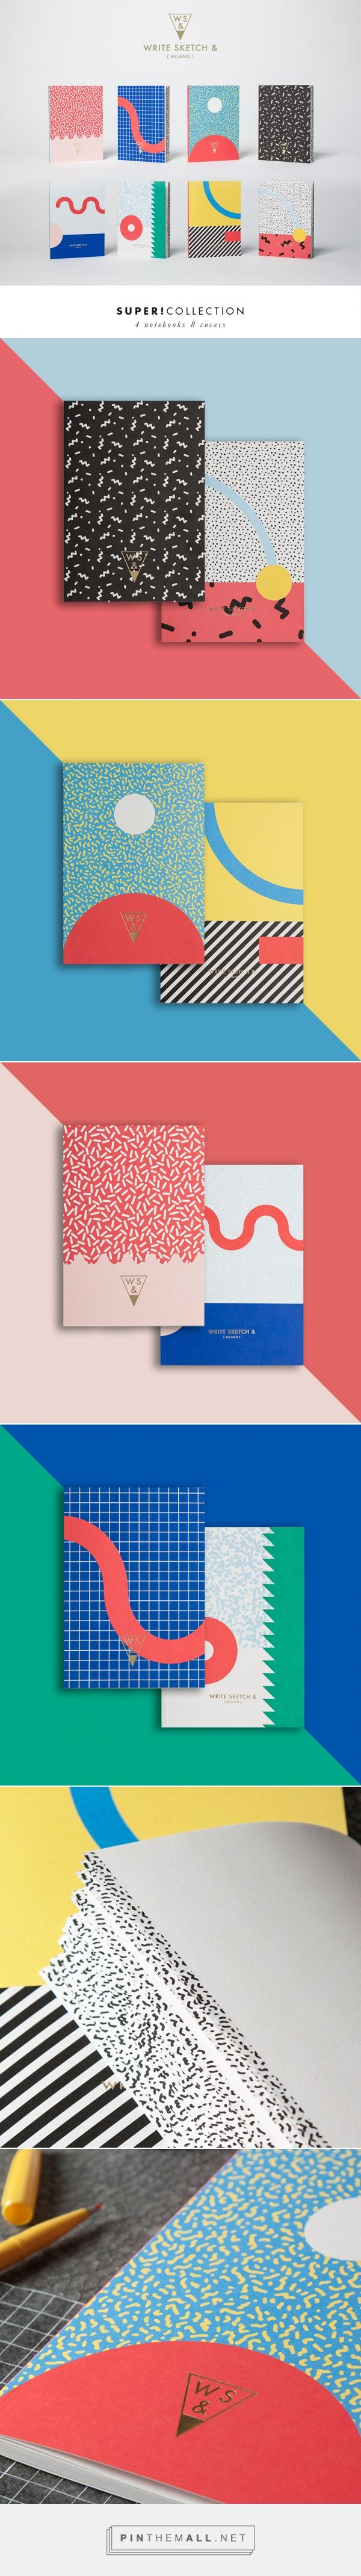 Write Sketch & | Super Collection | Notebooks Designed by Officemilano